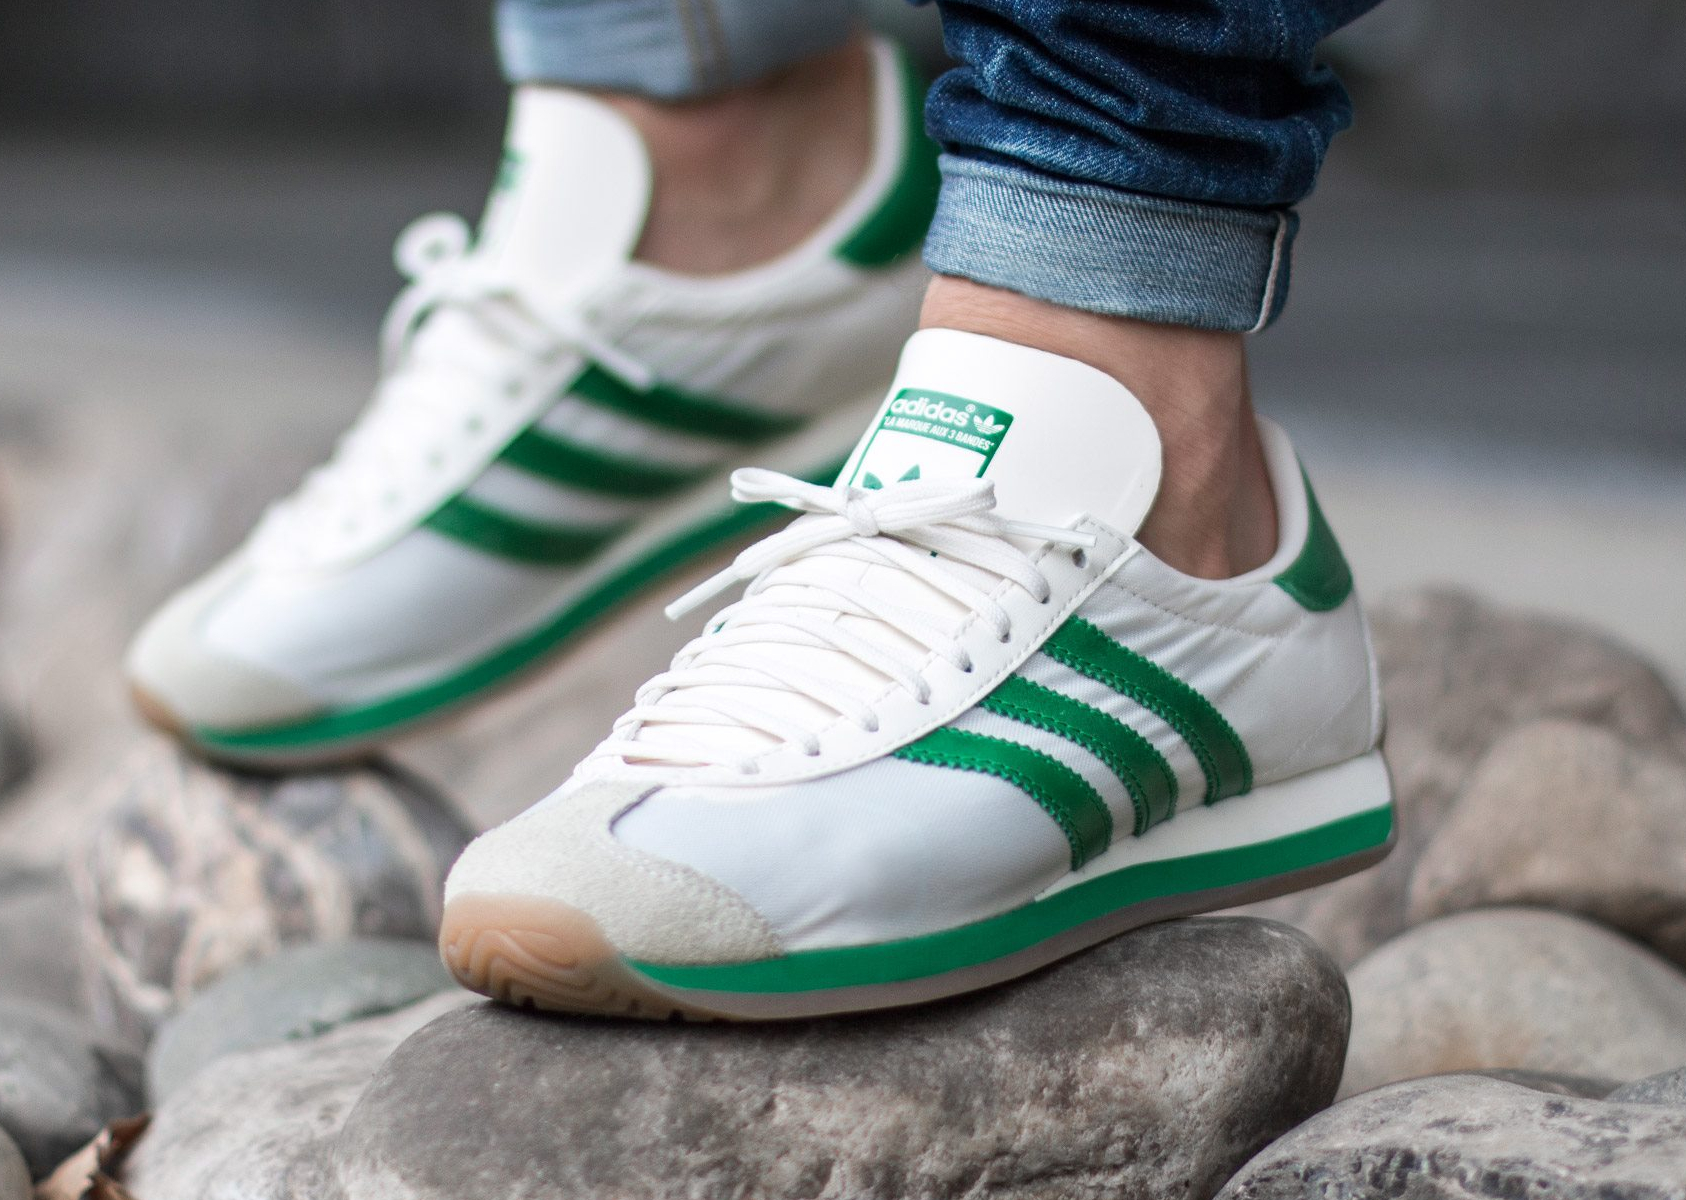 Adidas Country OG 'Chalk WhiteGreenGum' 2016